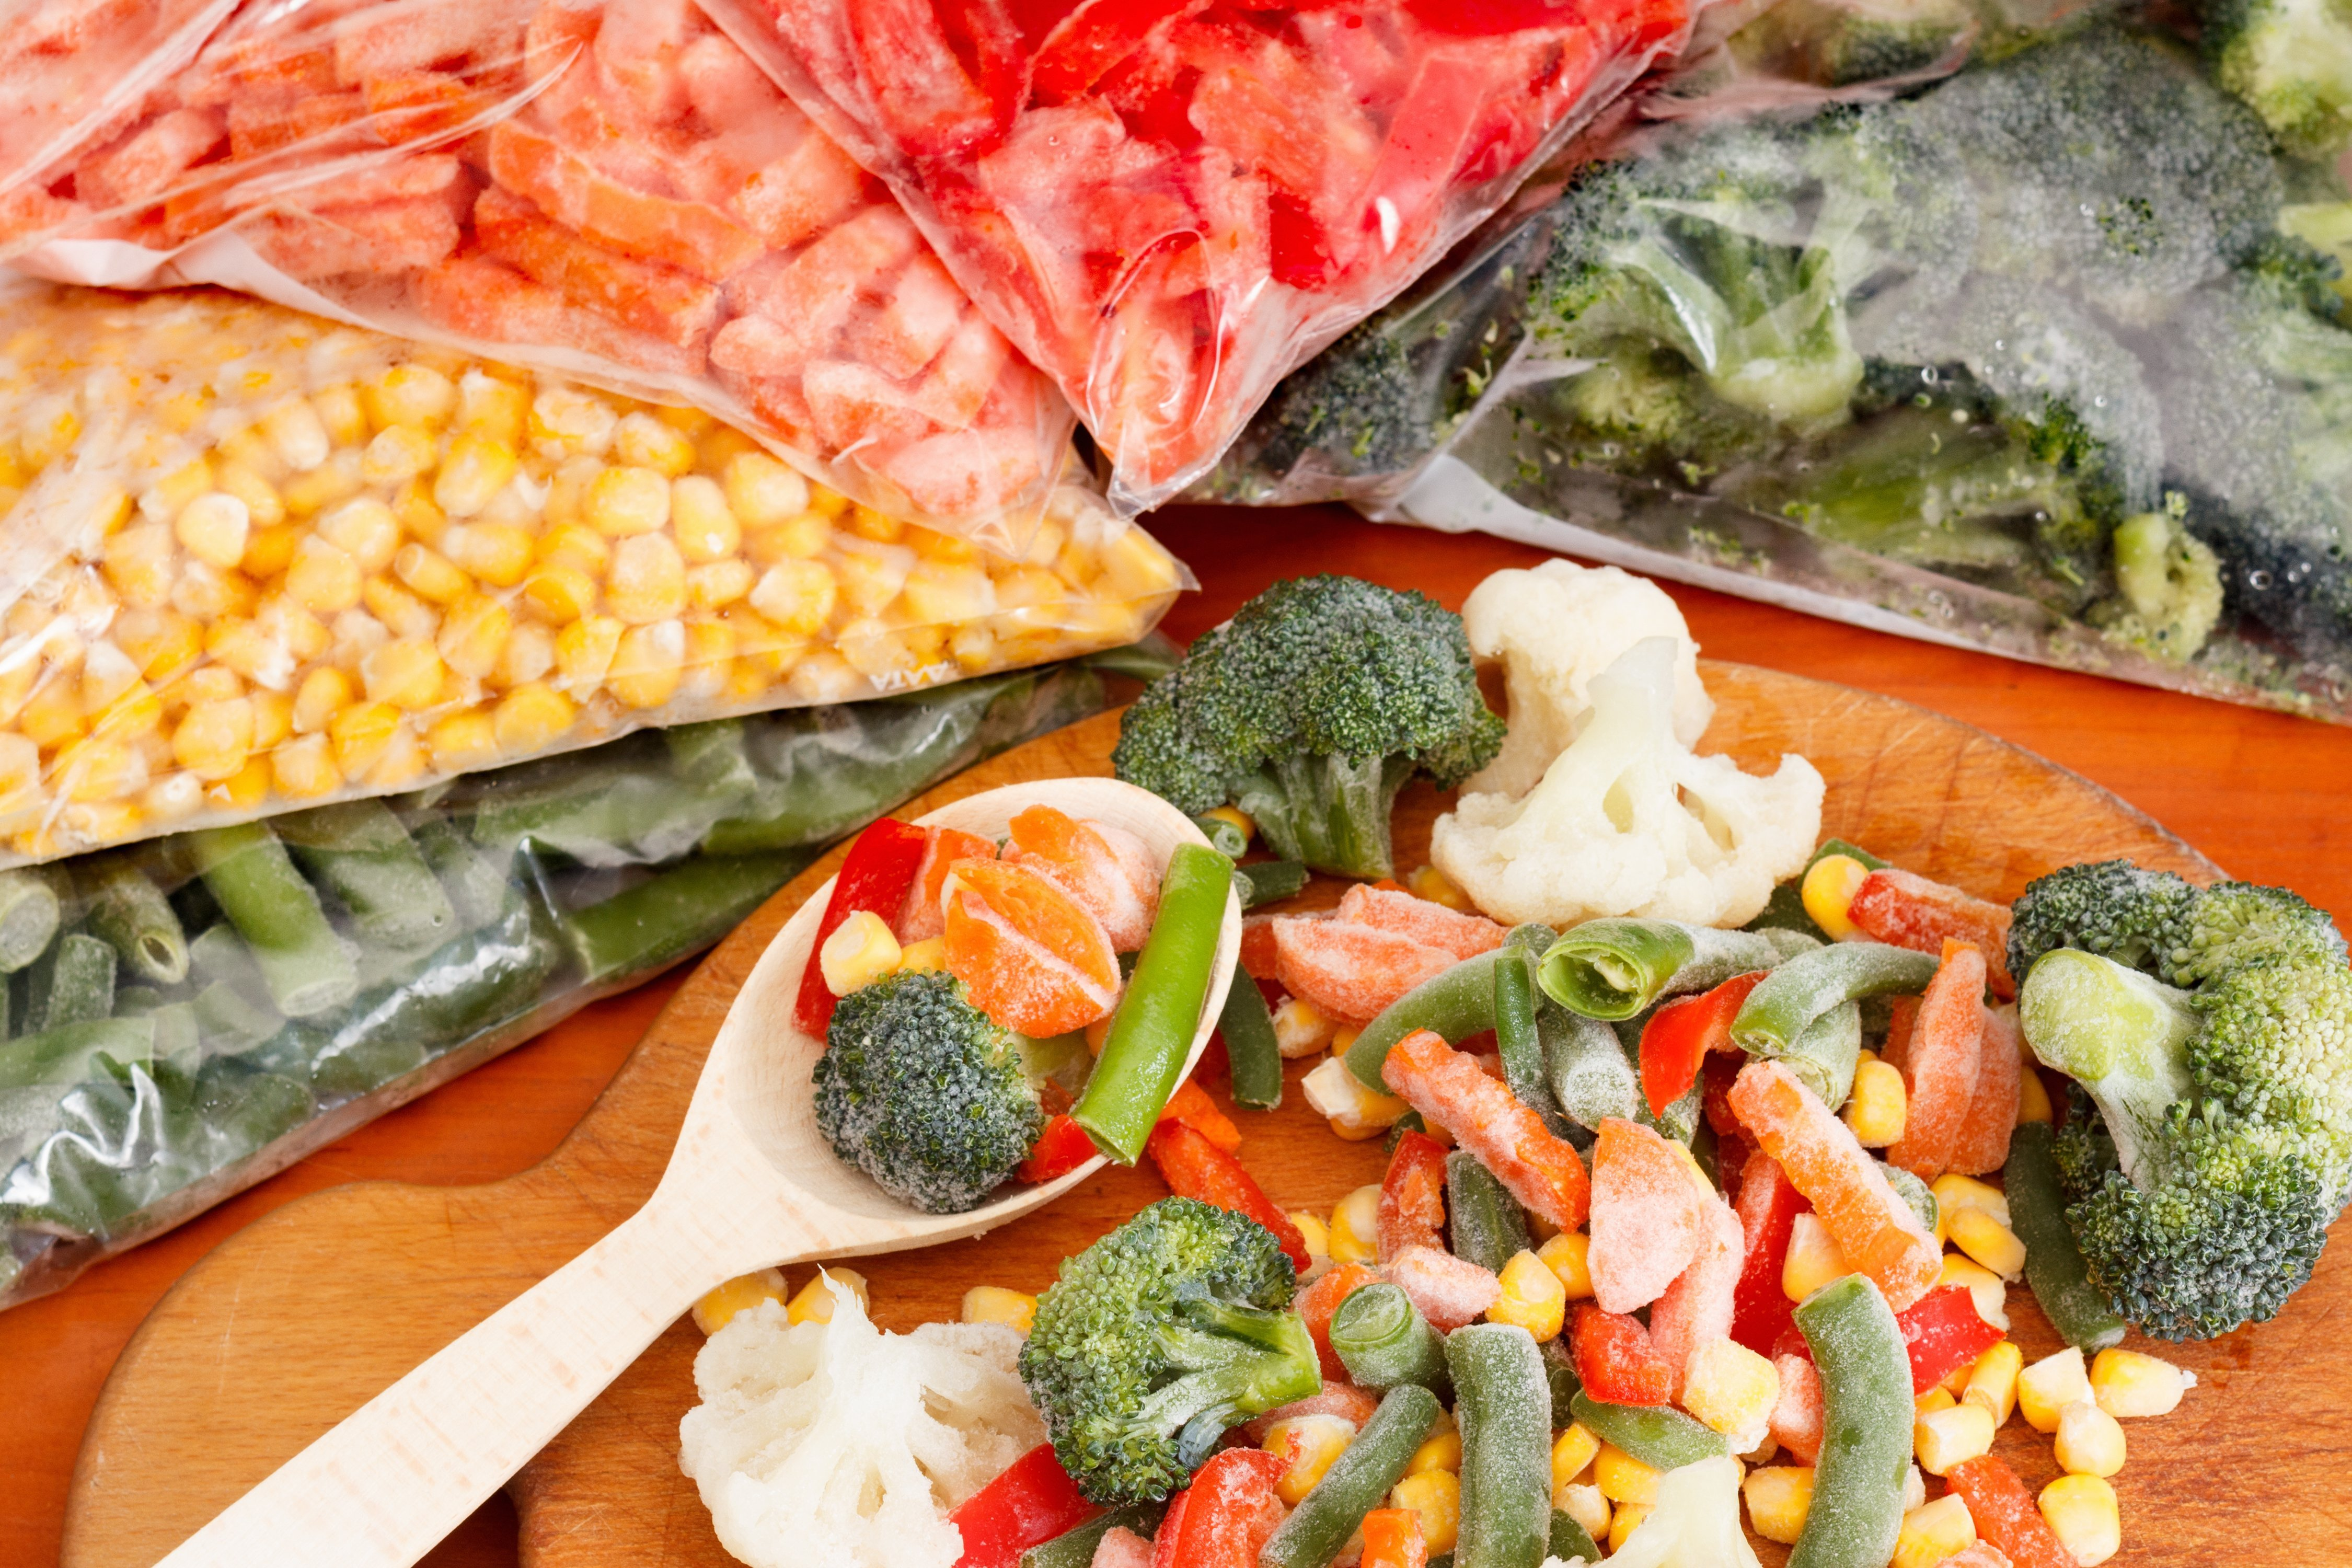 Frozen vegetables on cutting board and plastic bags. | Source: Shutterstock